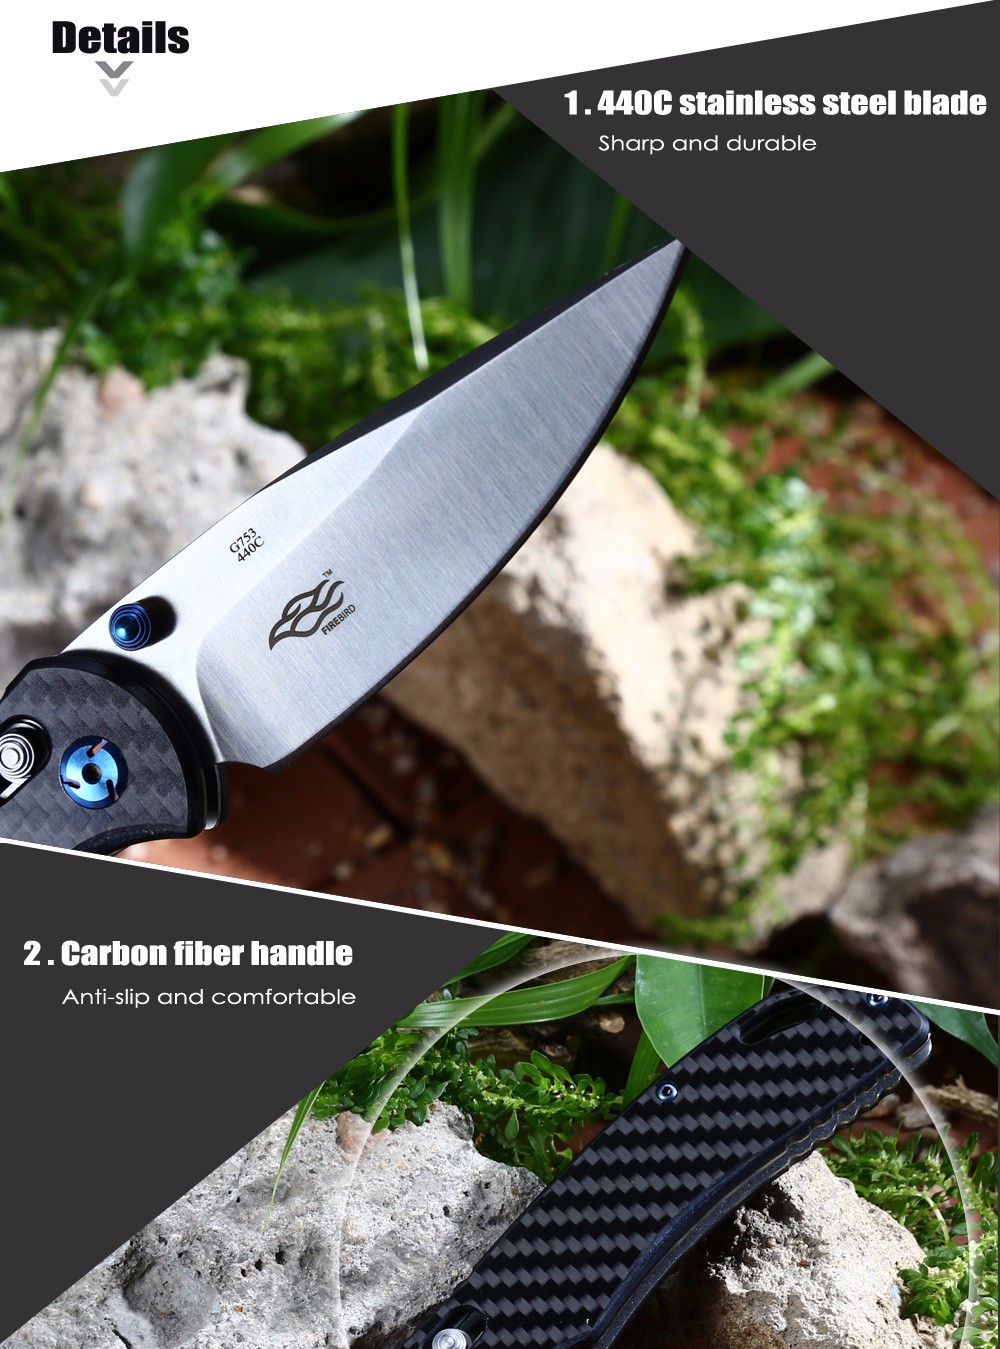 Ganzo G7531 - CF Axis Lock Foldable Knife with Carbon Fiber Handle